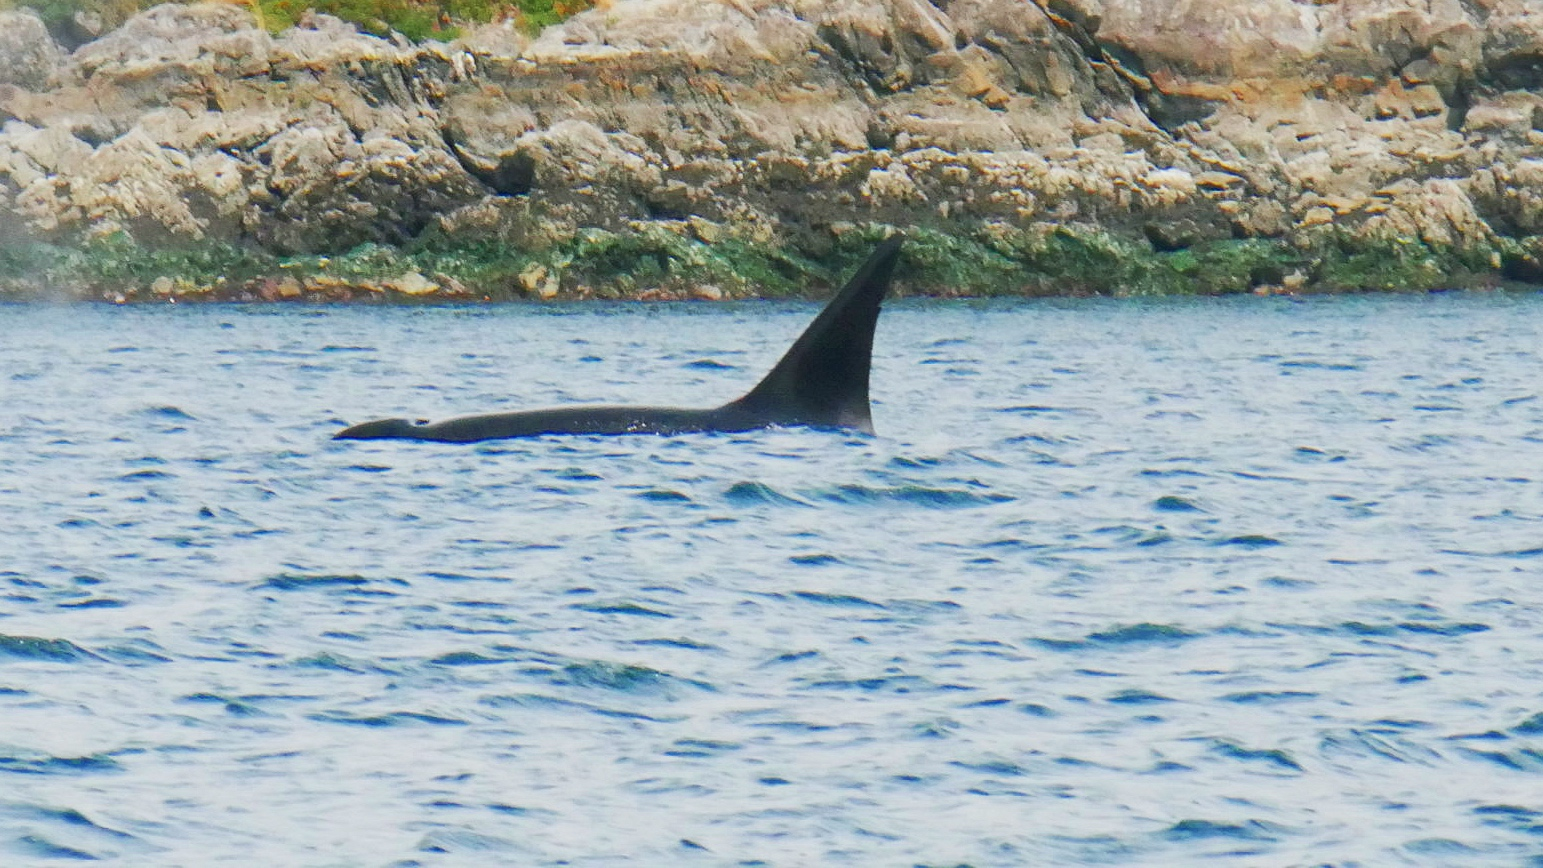 T124C, Cooper. He has a distinct notch about midway down his dorsal fin. Can you see it? Photo by Cheyenne Brewster (10:30).